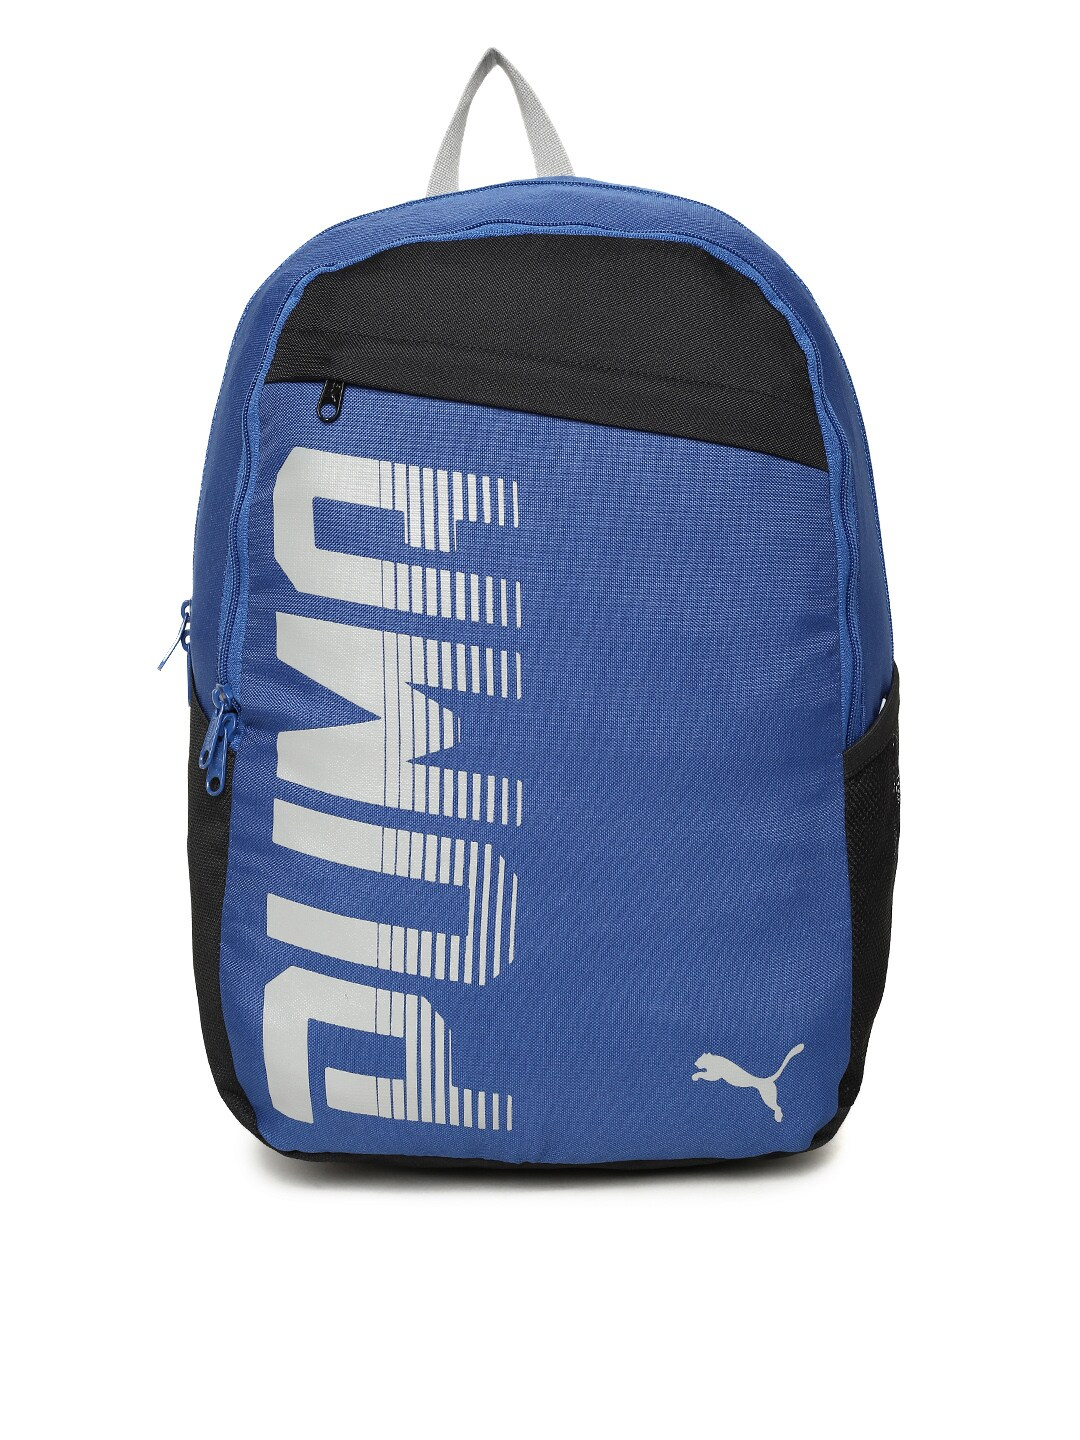 0d8fef4f3b26 Puma Casuals Casual Sports - Buy Puma Casuals Casual Sports online in India